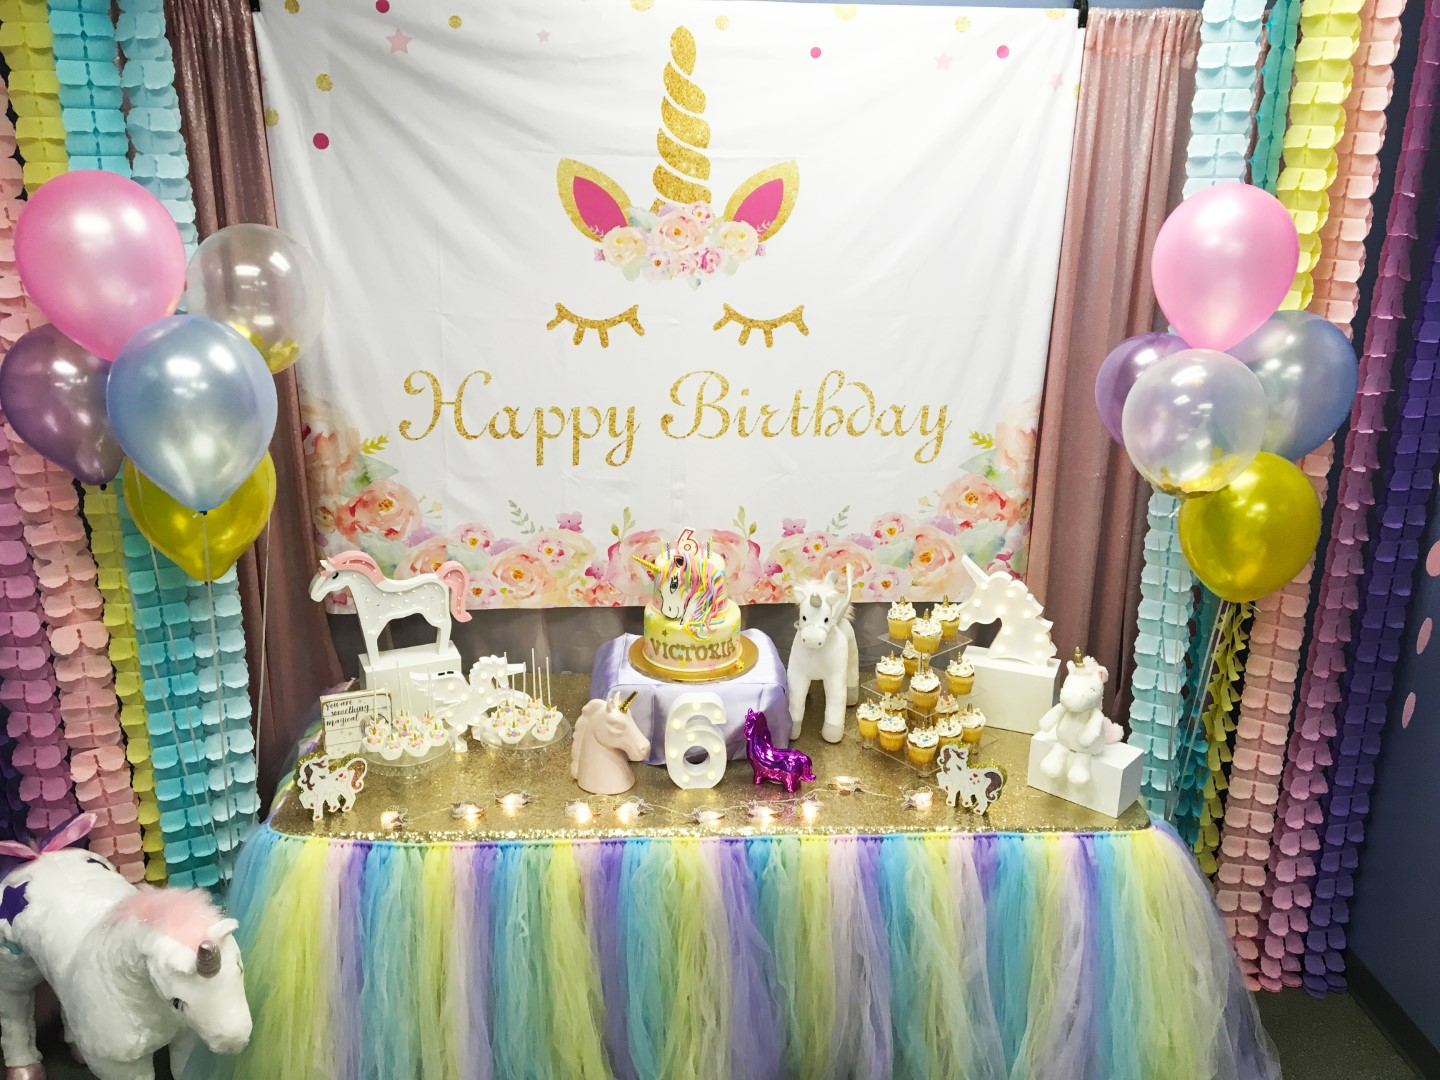 Southwest Orlando children's birthday party packages